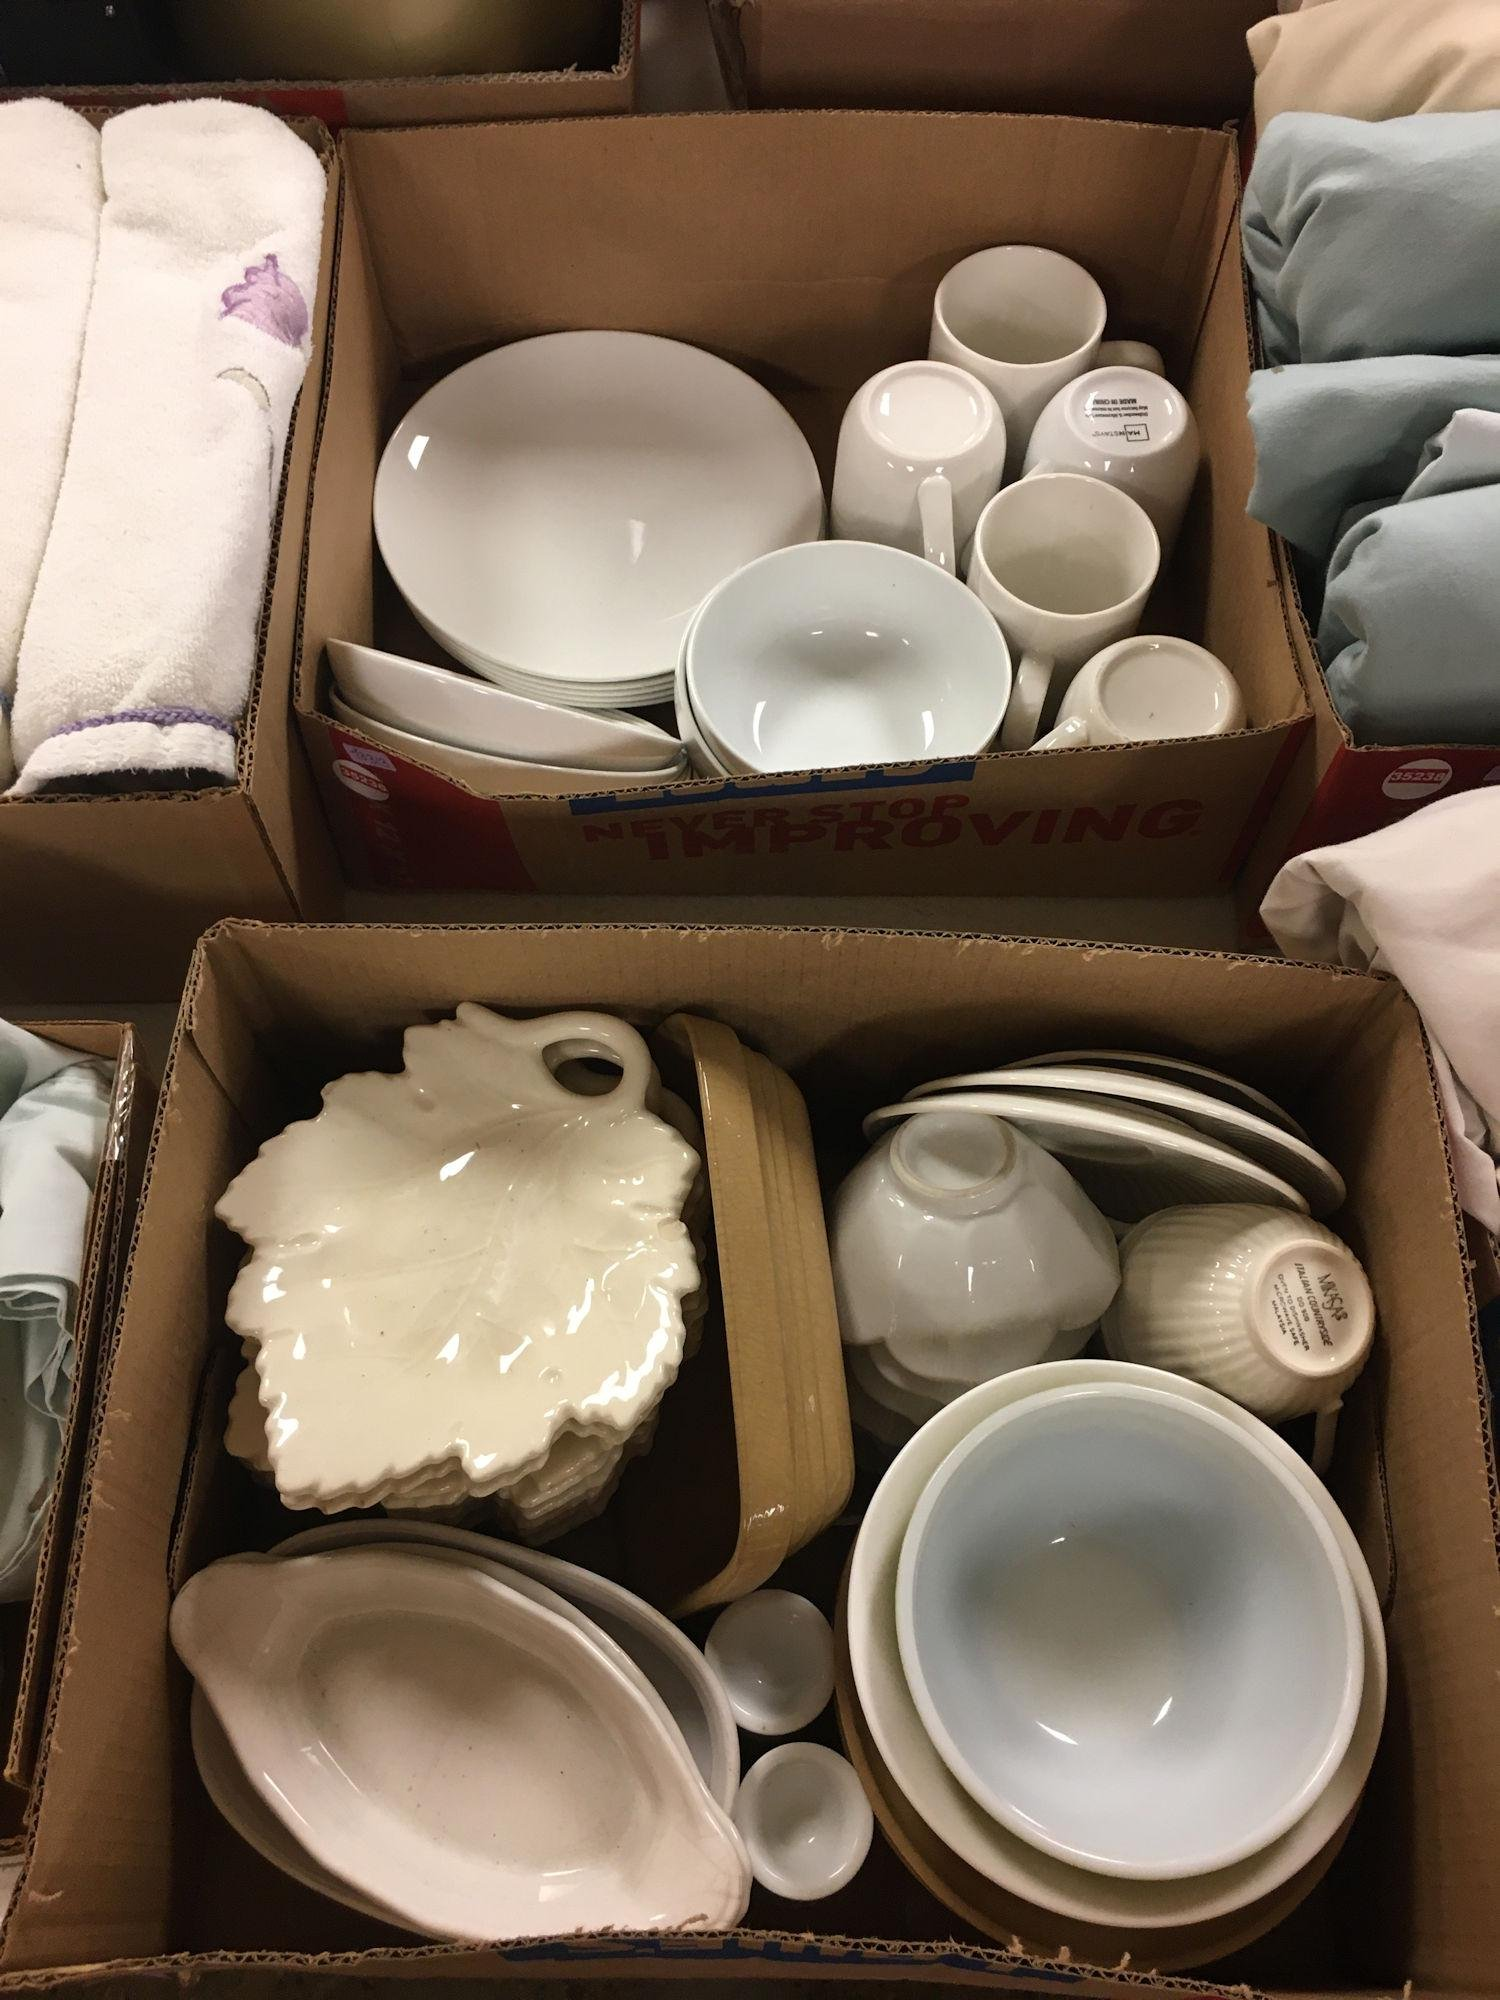 2 BOX LOTS WITH LEAF SNACK TRAYS, WHITE PLATES AND